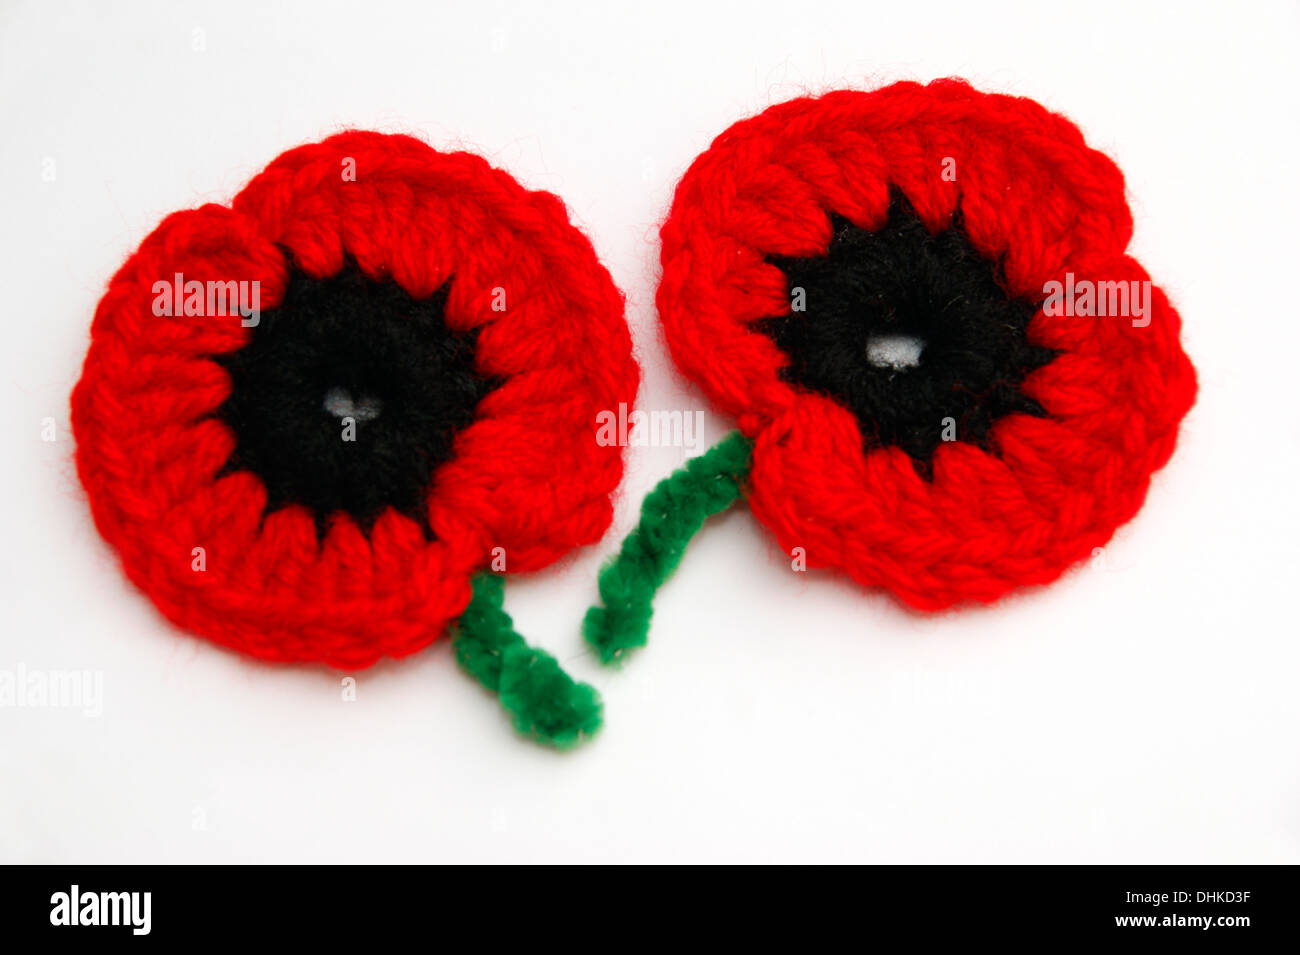 2 handmade crochet poppies the poppy emblem for remembrance & memory of the fallen in wars of the past & ongoing campaigns UK - Stock Image